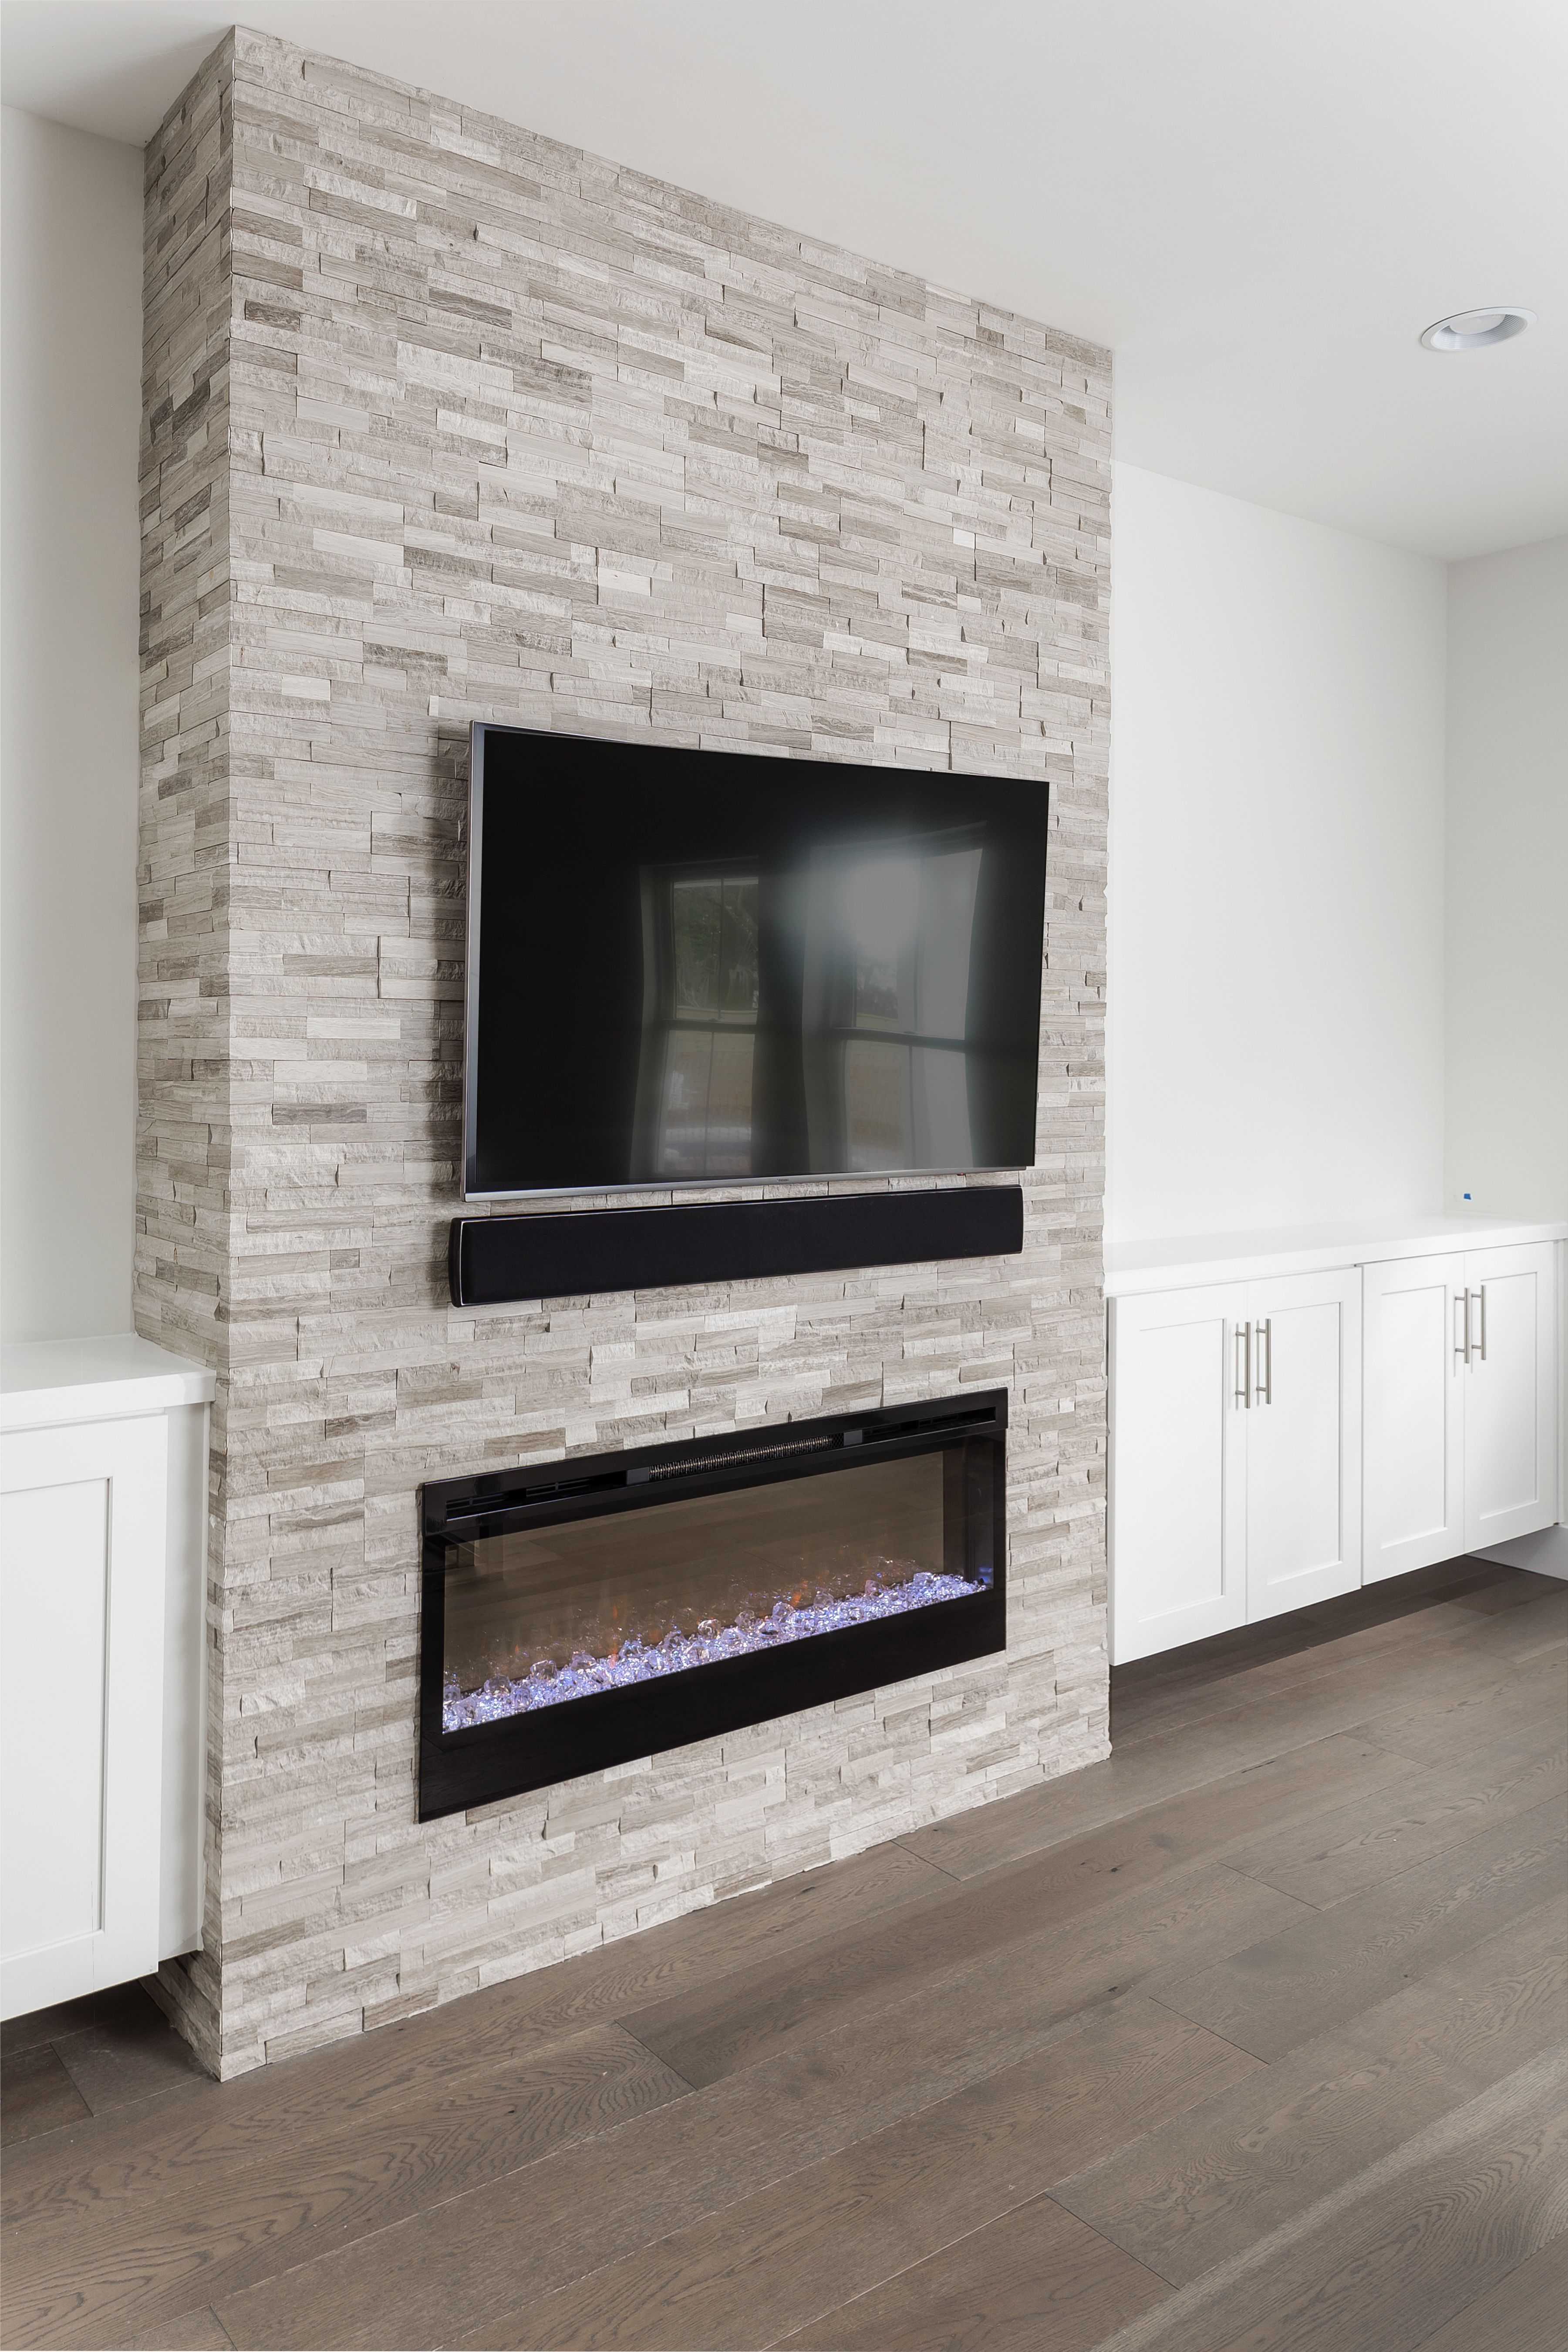 Hottest Screen Tv Over Electric Fireplace Style How Safe Are Electric Fireplaces They Re Very Safe If You Follow Basement Fireplace Fireplace Fireplace Design